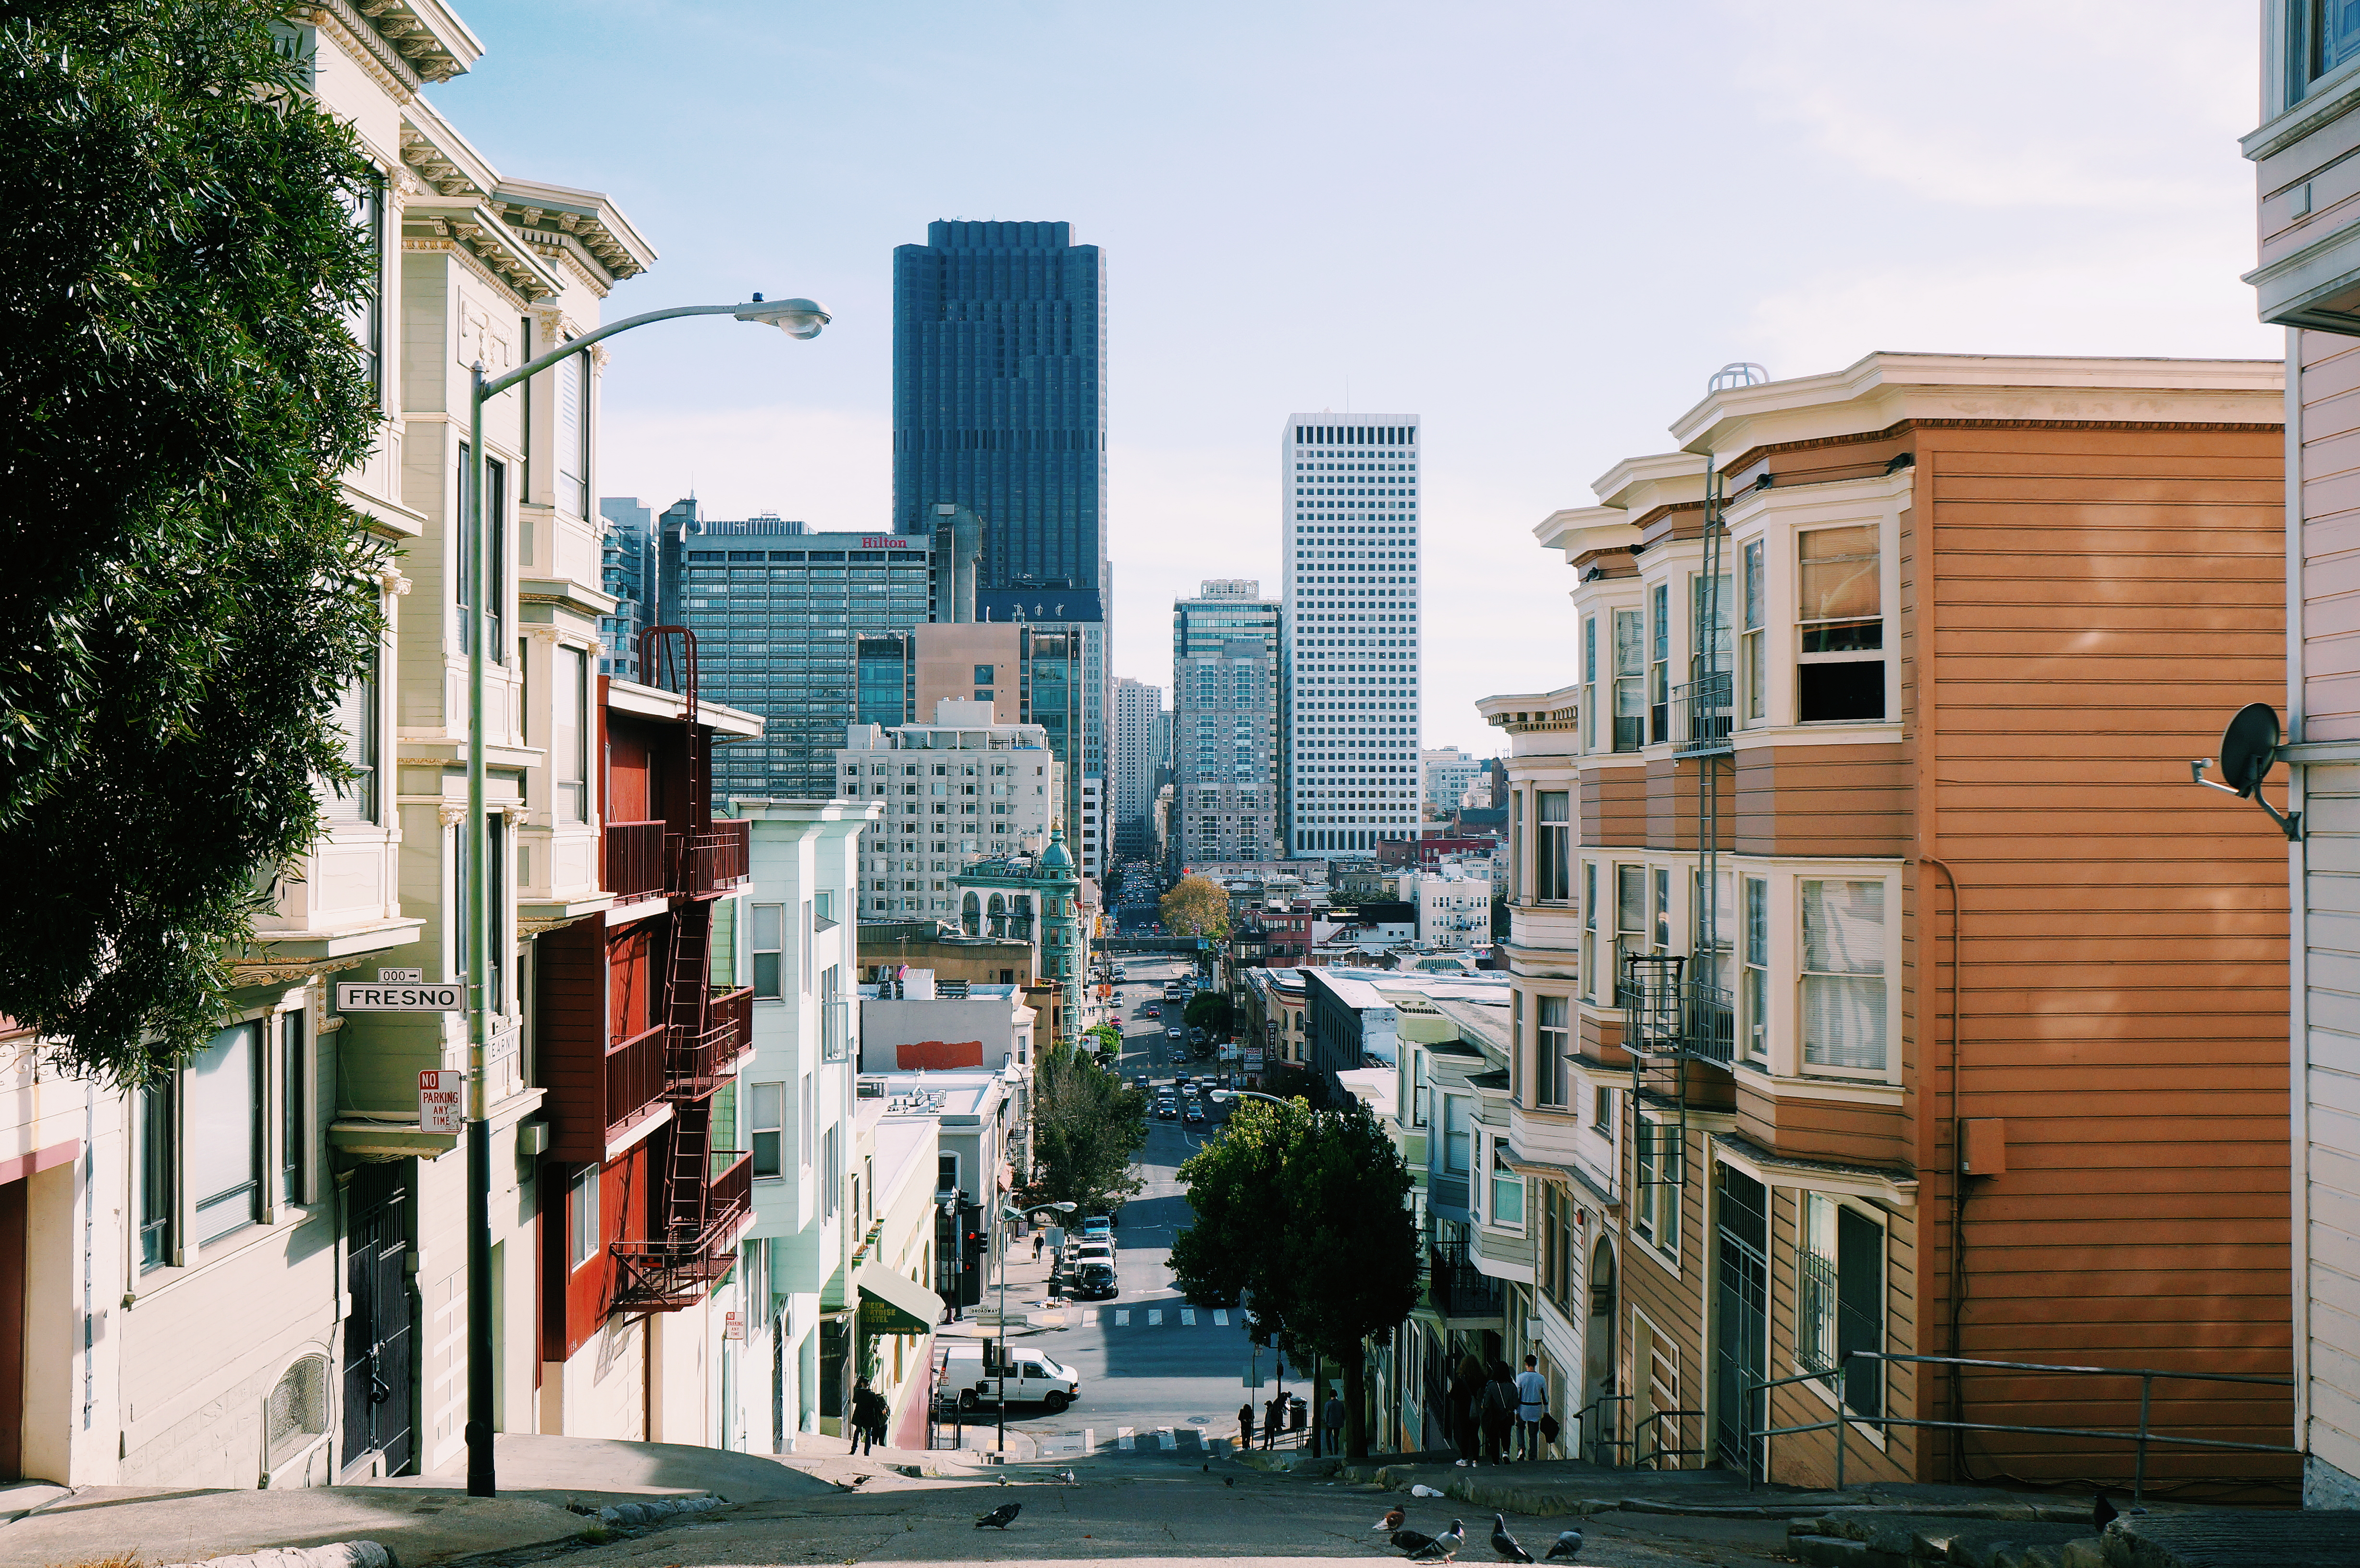 A view down a street in San Francisco. There are three to four story buildings on either side of the street and skyscrapers in the distance.